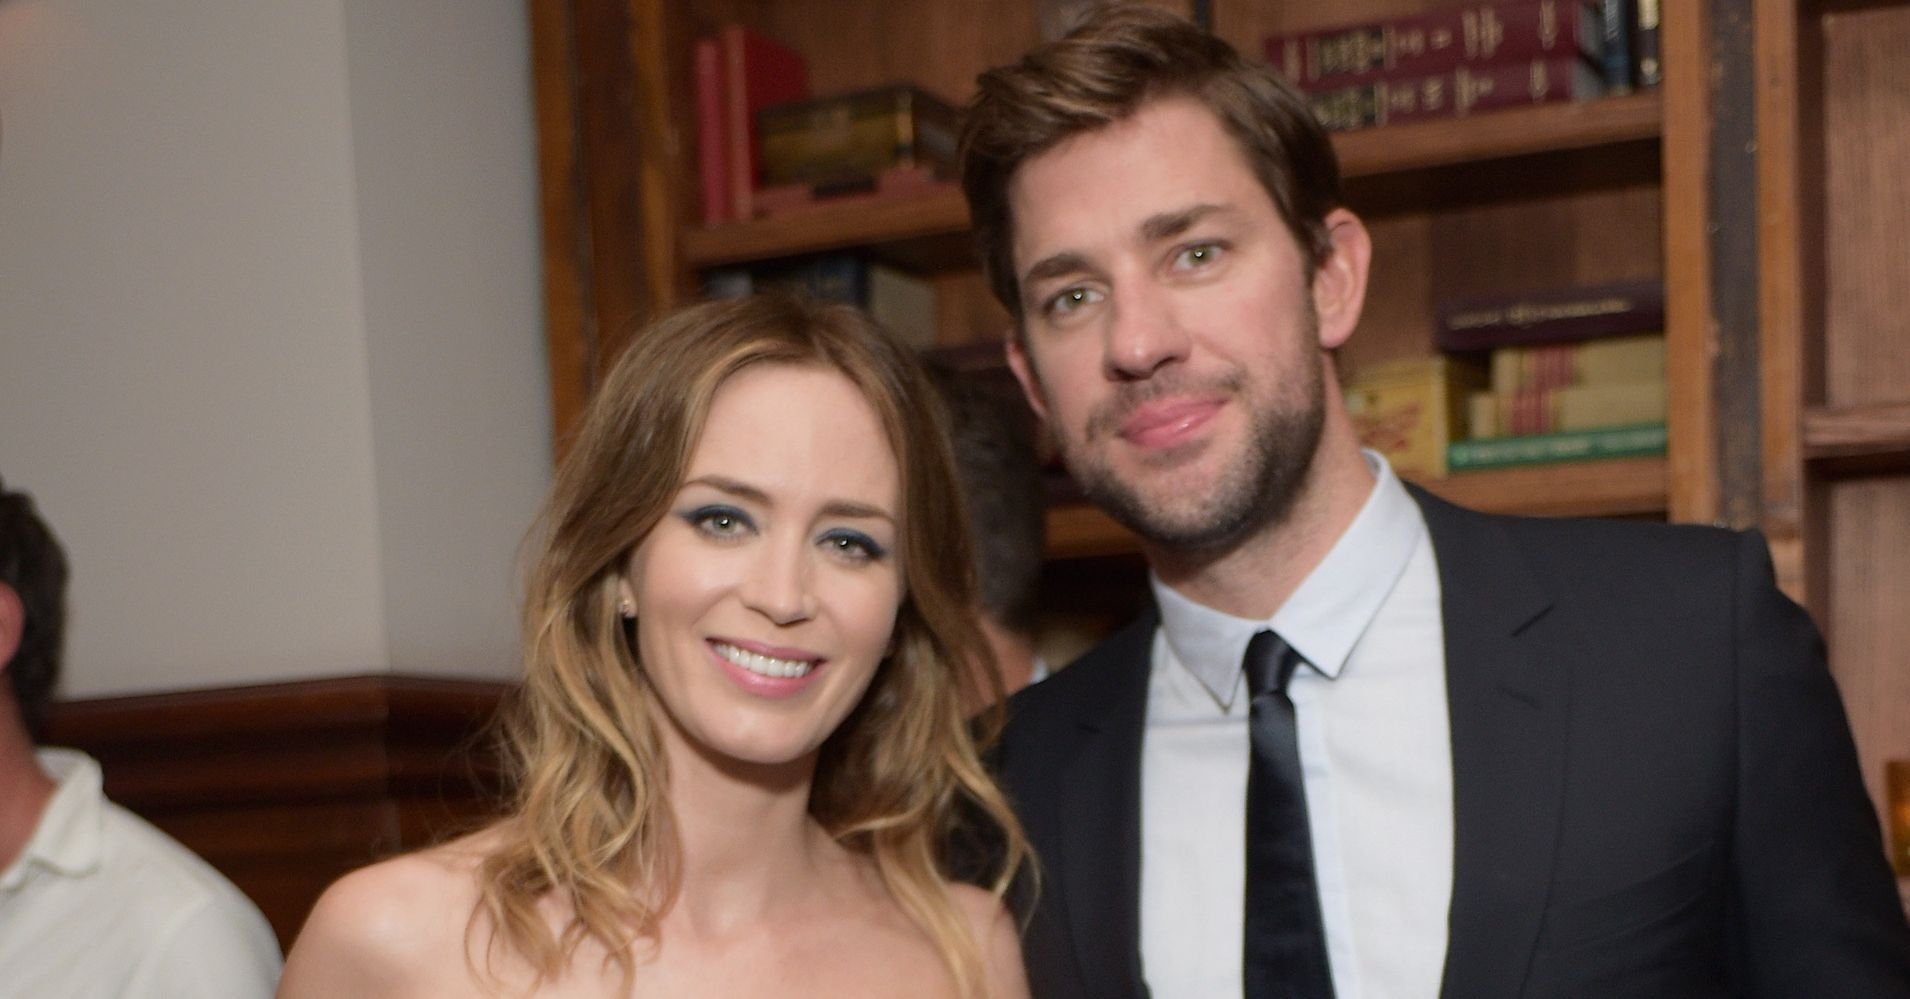 John Krasinski's Comments About Emily Blunt Will Make You